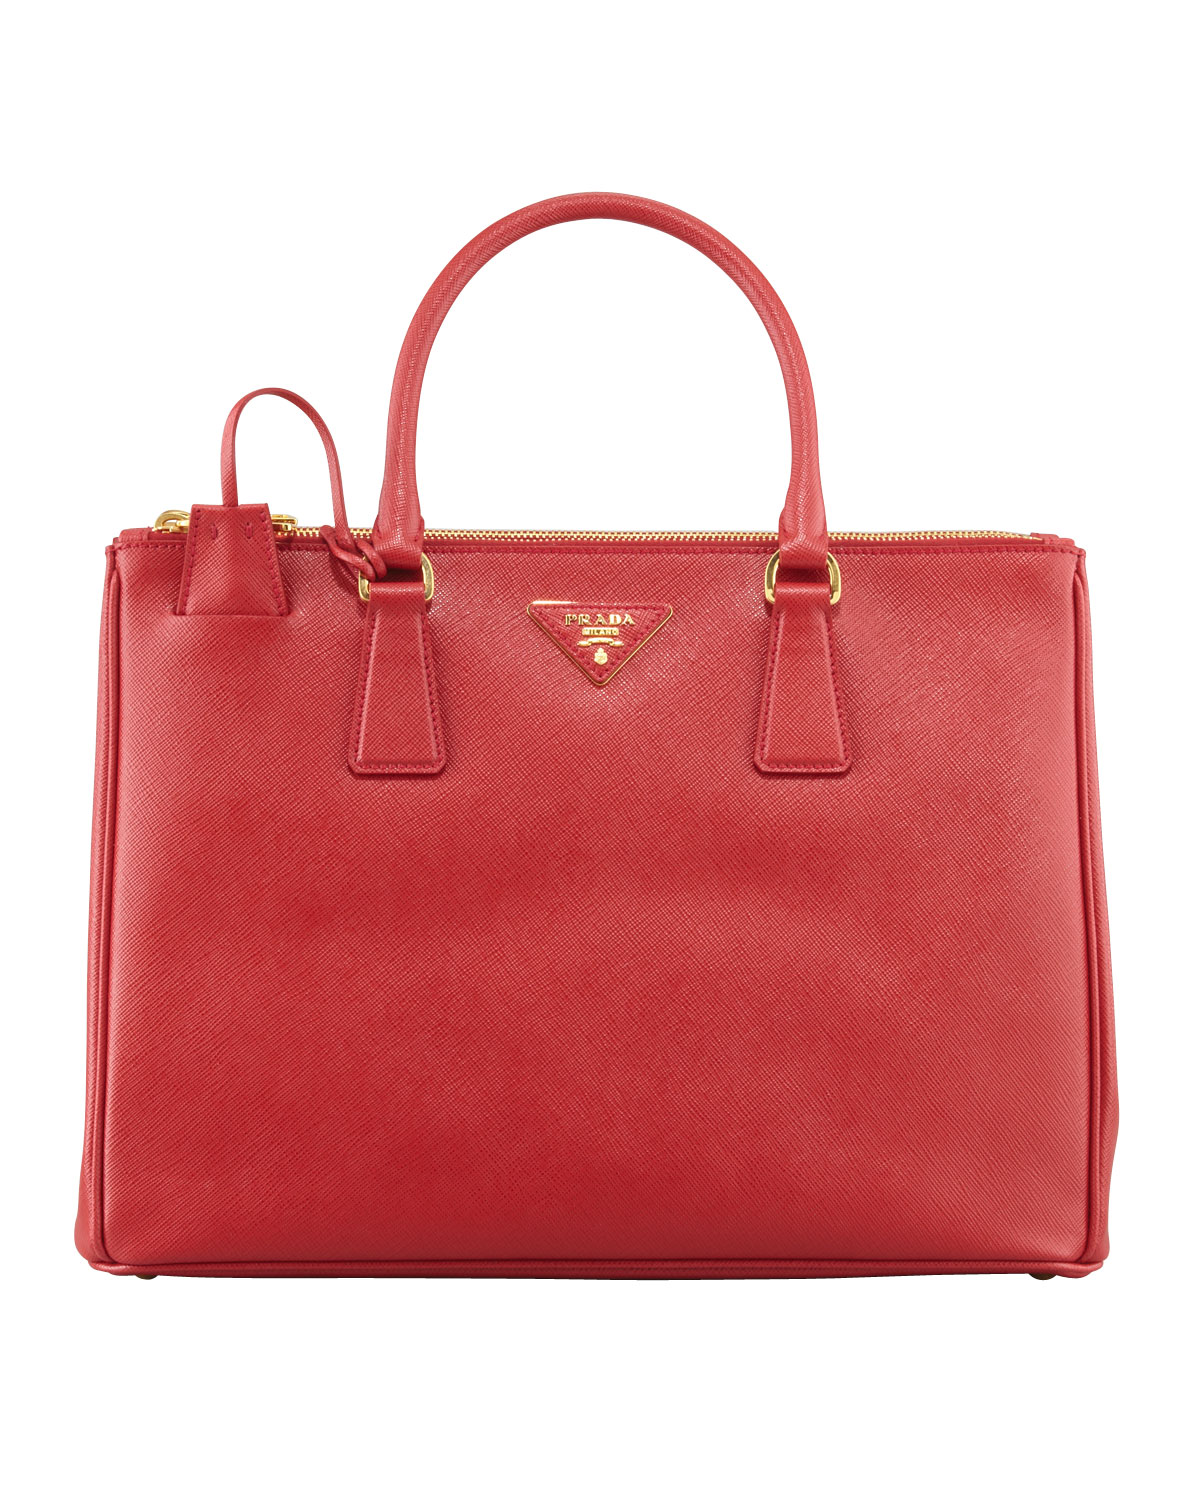 Prada Medium Saffiano Double-Zip Executive Tote Bag 8db79158ffd28